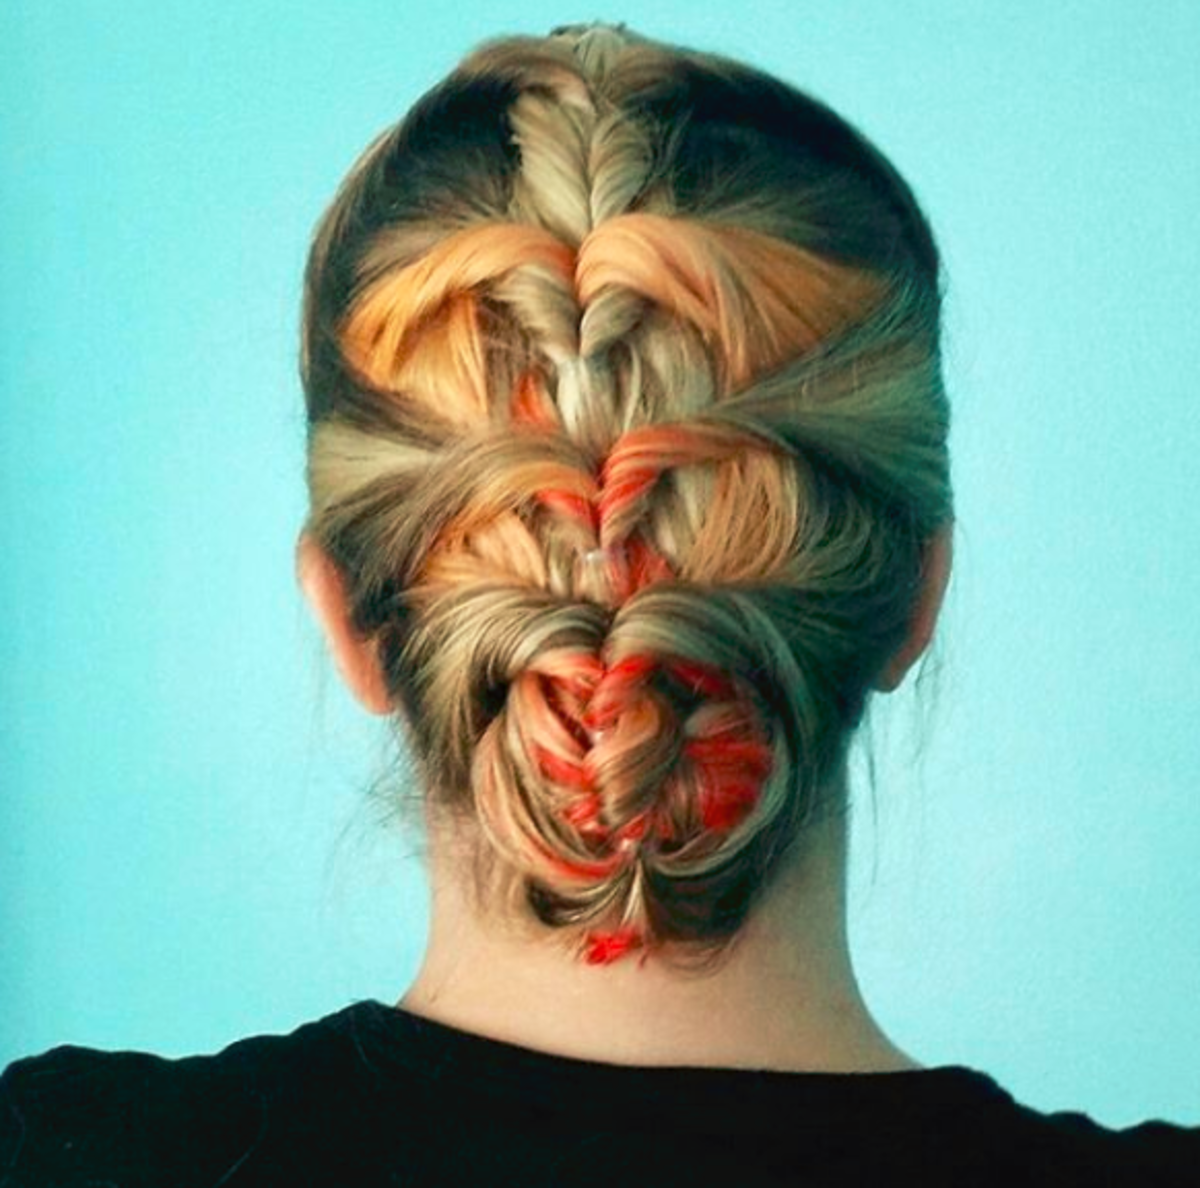 hair-diy-5-hair-color-and-style-trends-to-switch-up-your-normal-routine